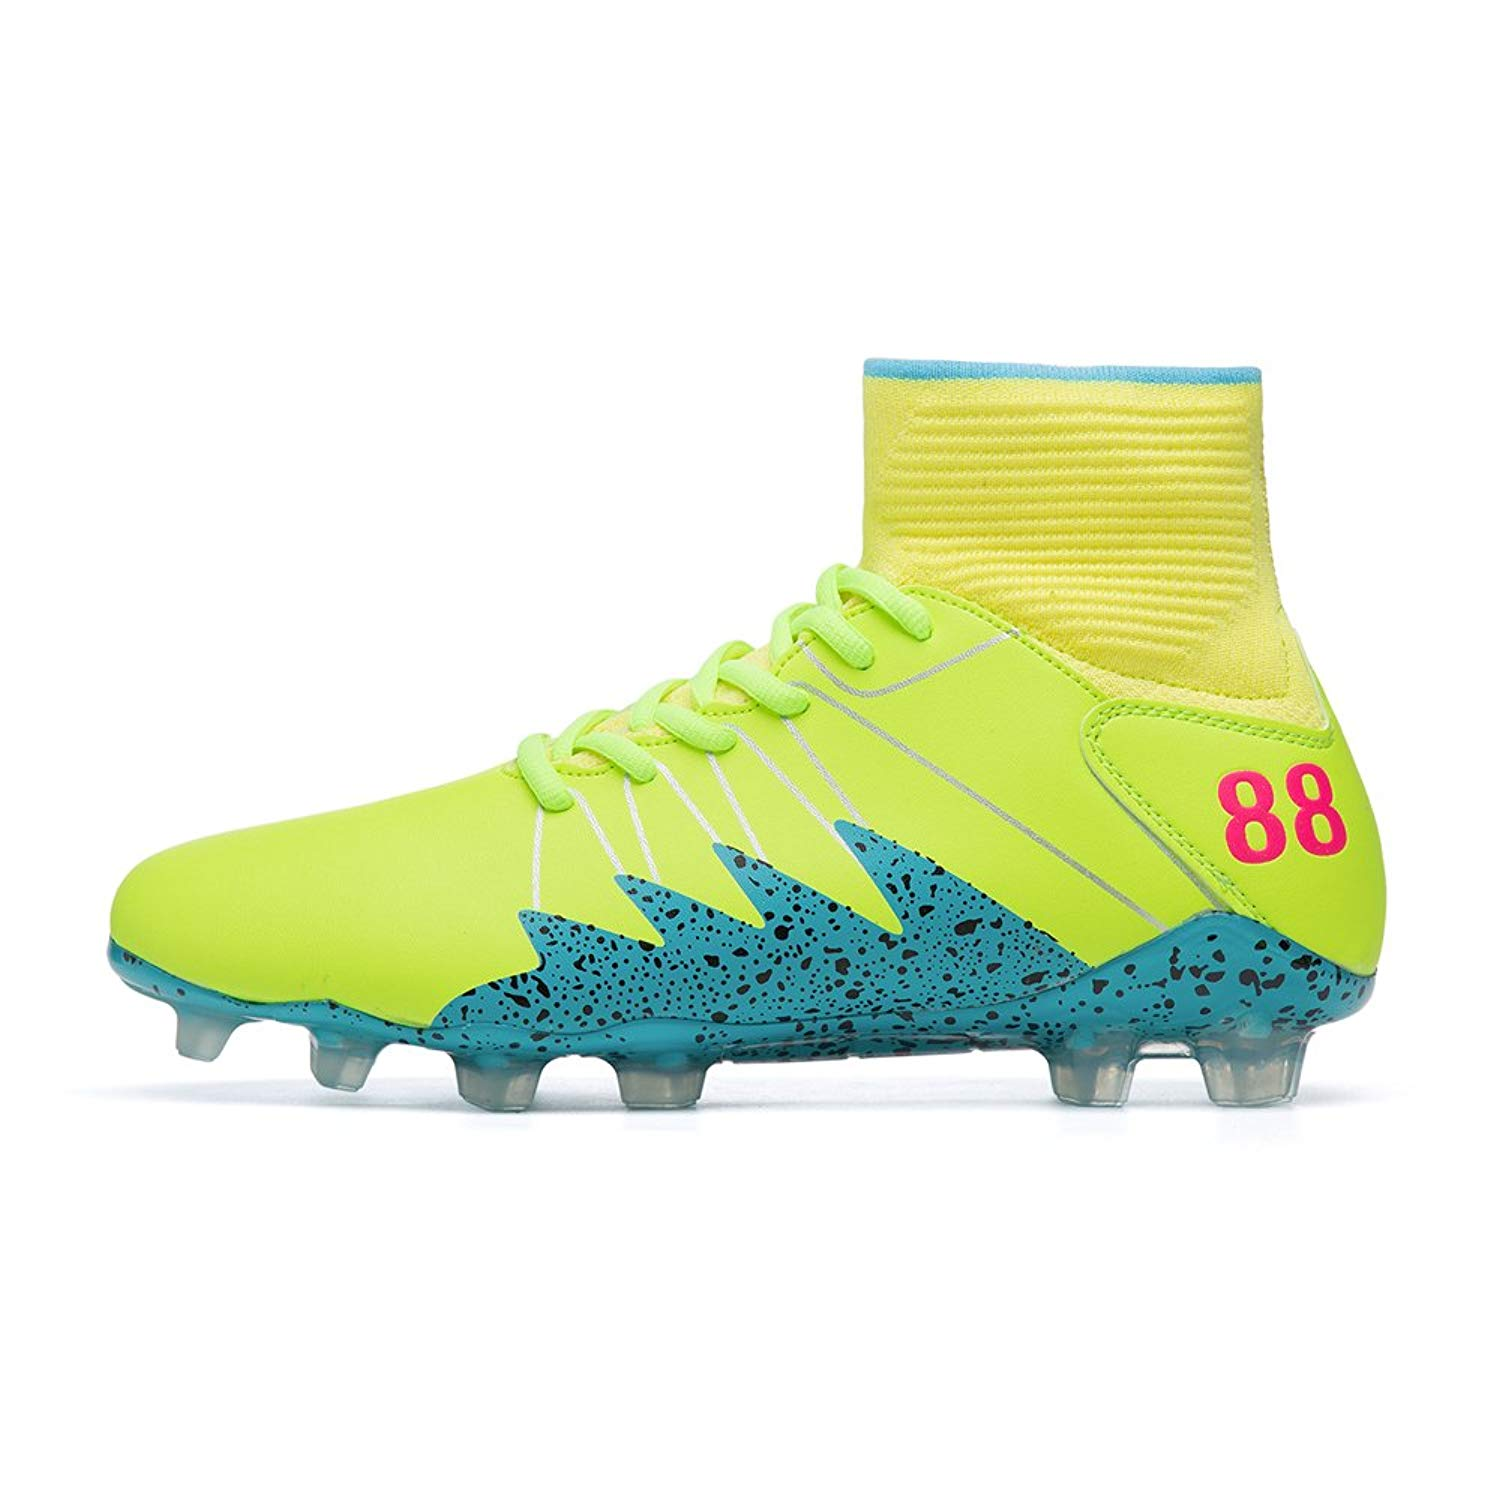 94493cf0739 Get Quotations · FG Soccer Cleats for Men Hypervenom 2 Boots ACC Soccer  Shoes Adult High Top Football Cleats